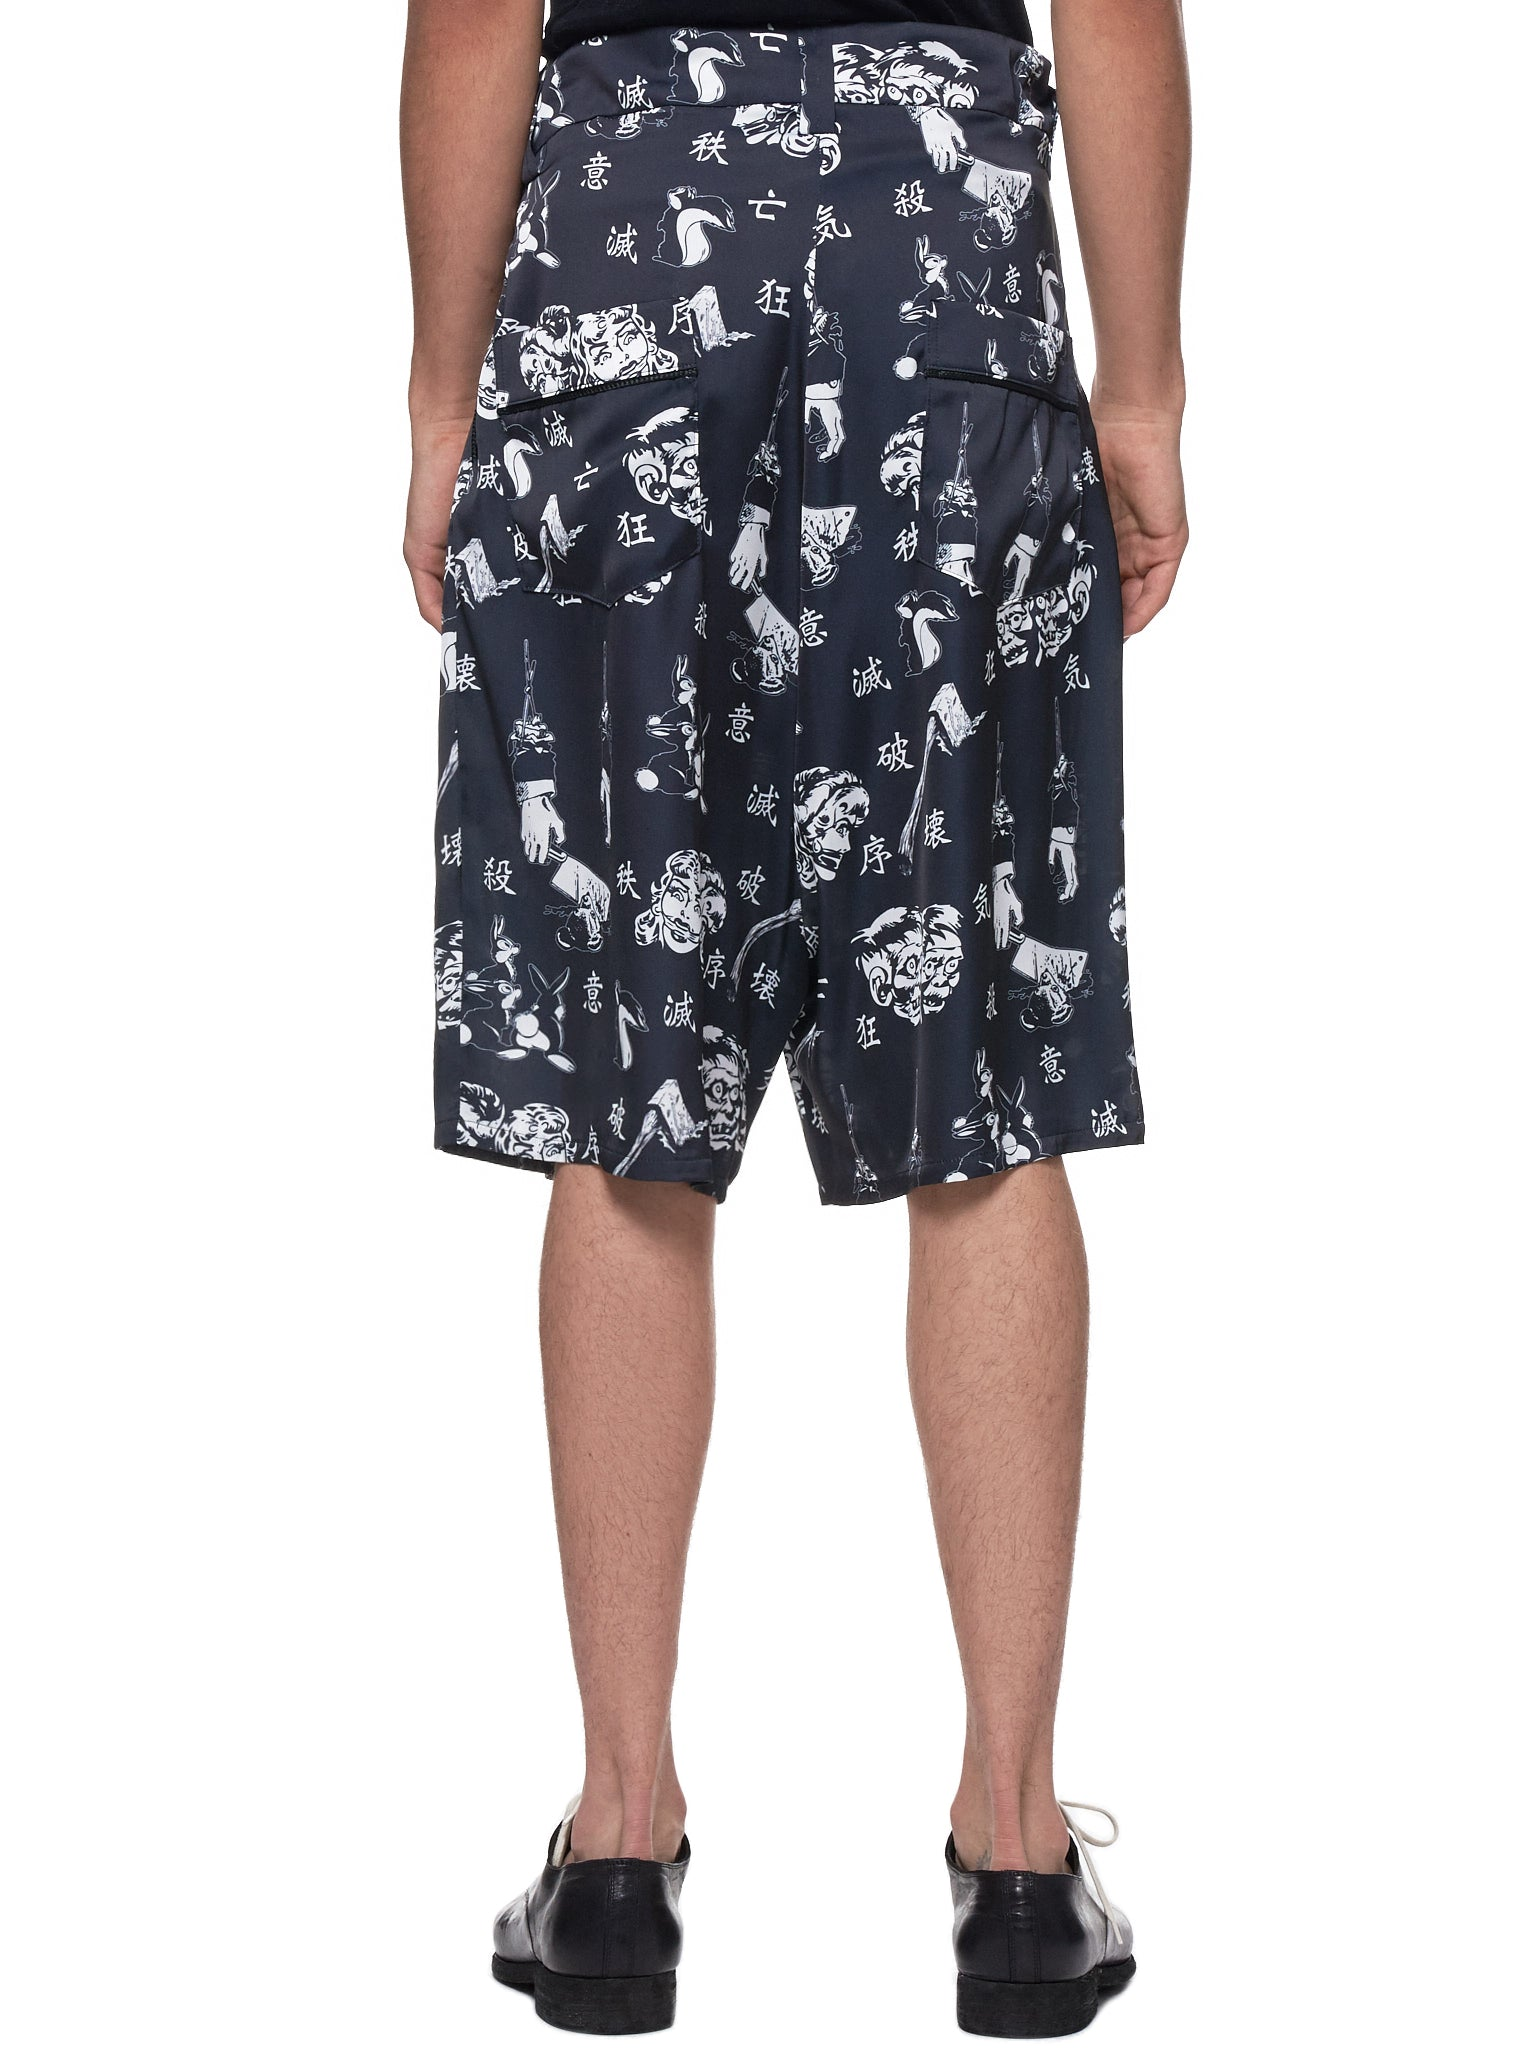 Kidill Shorts - Hlorenzo Back